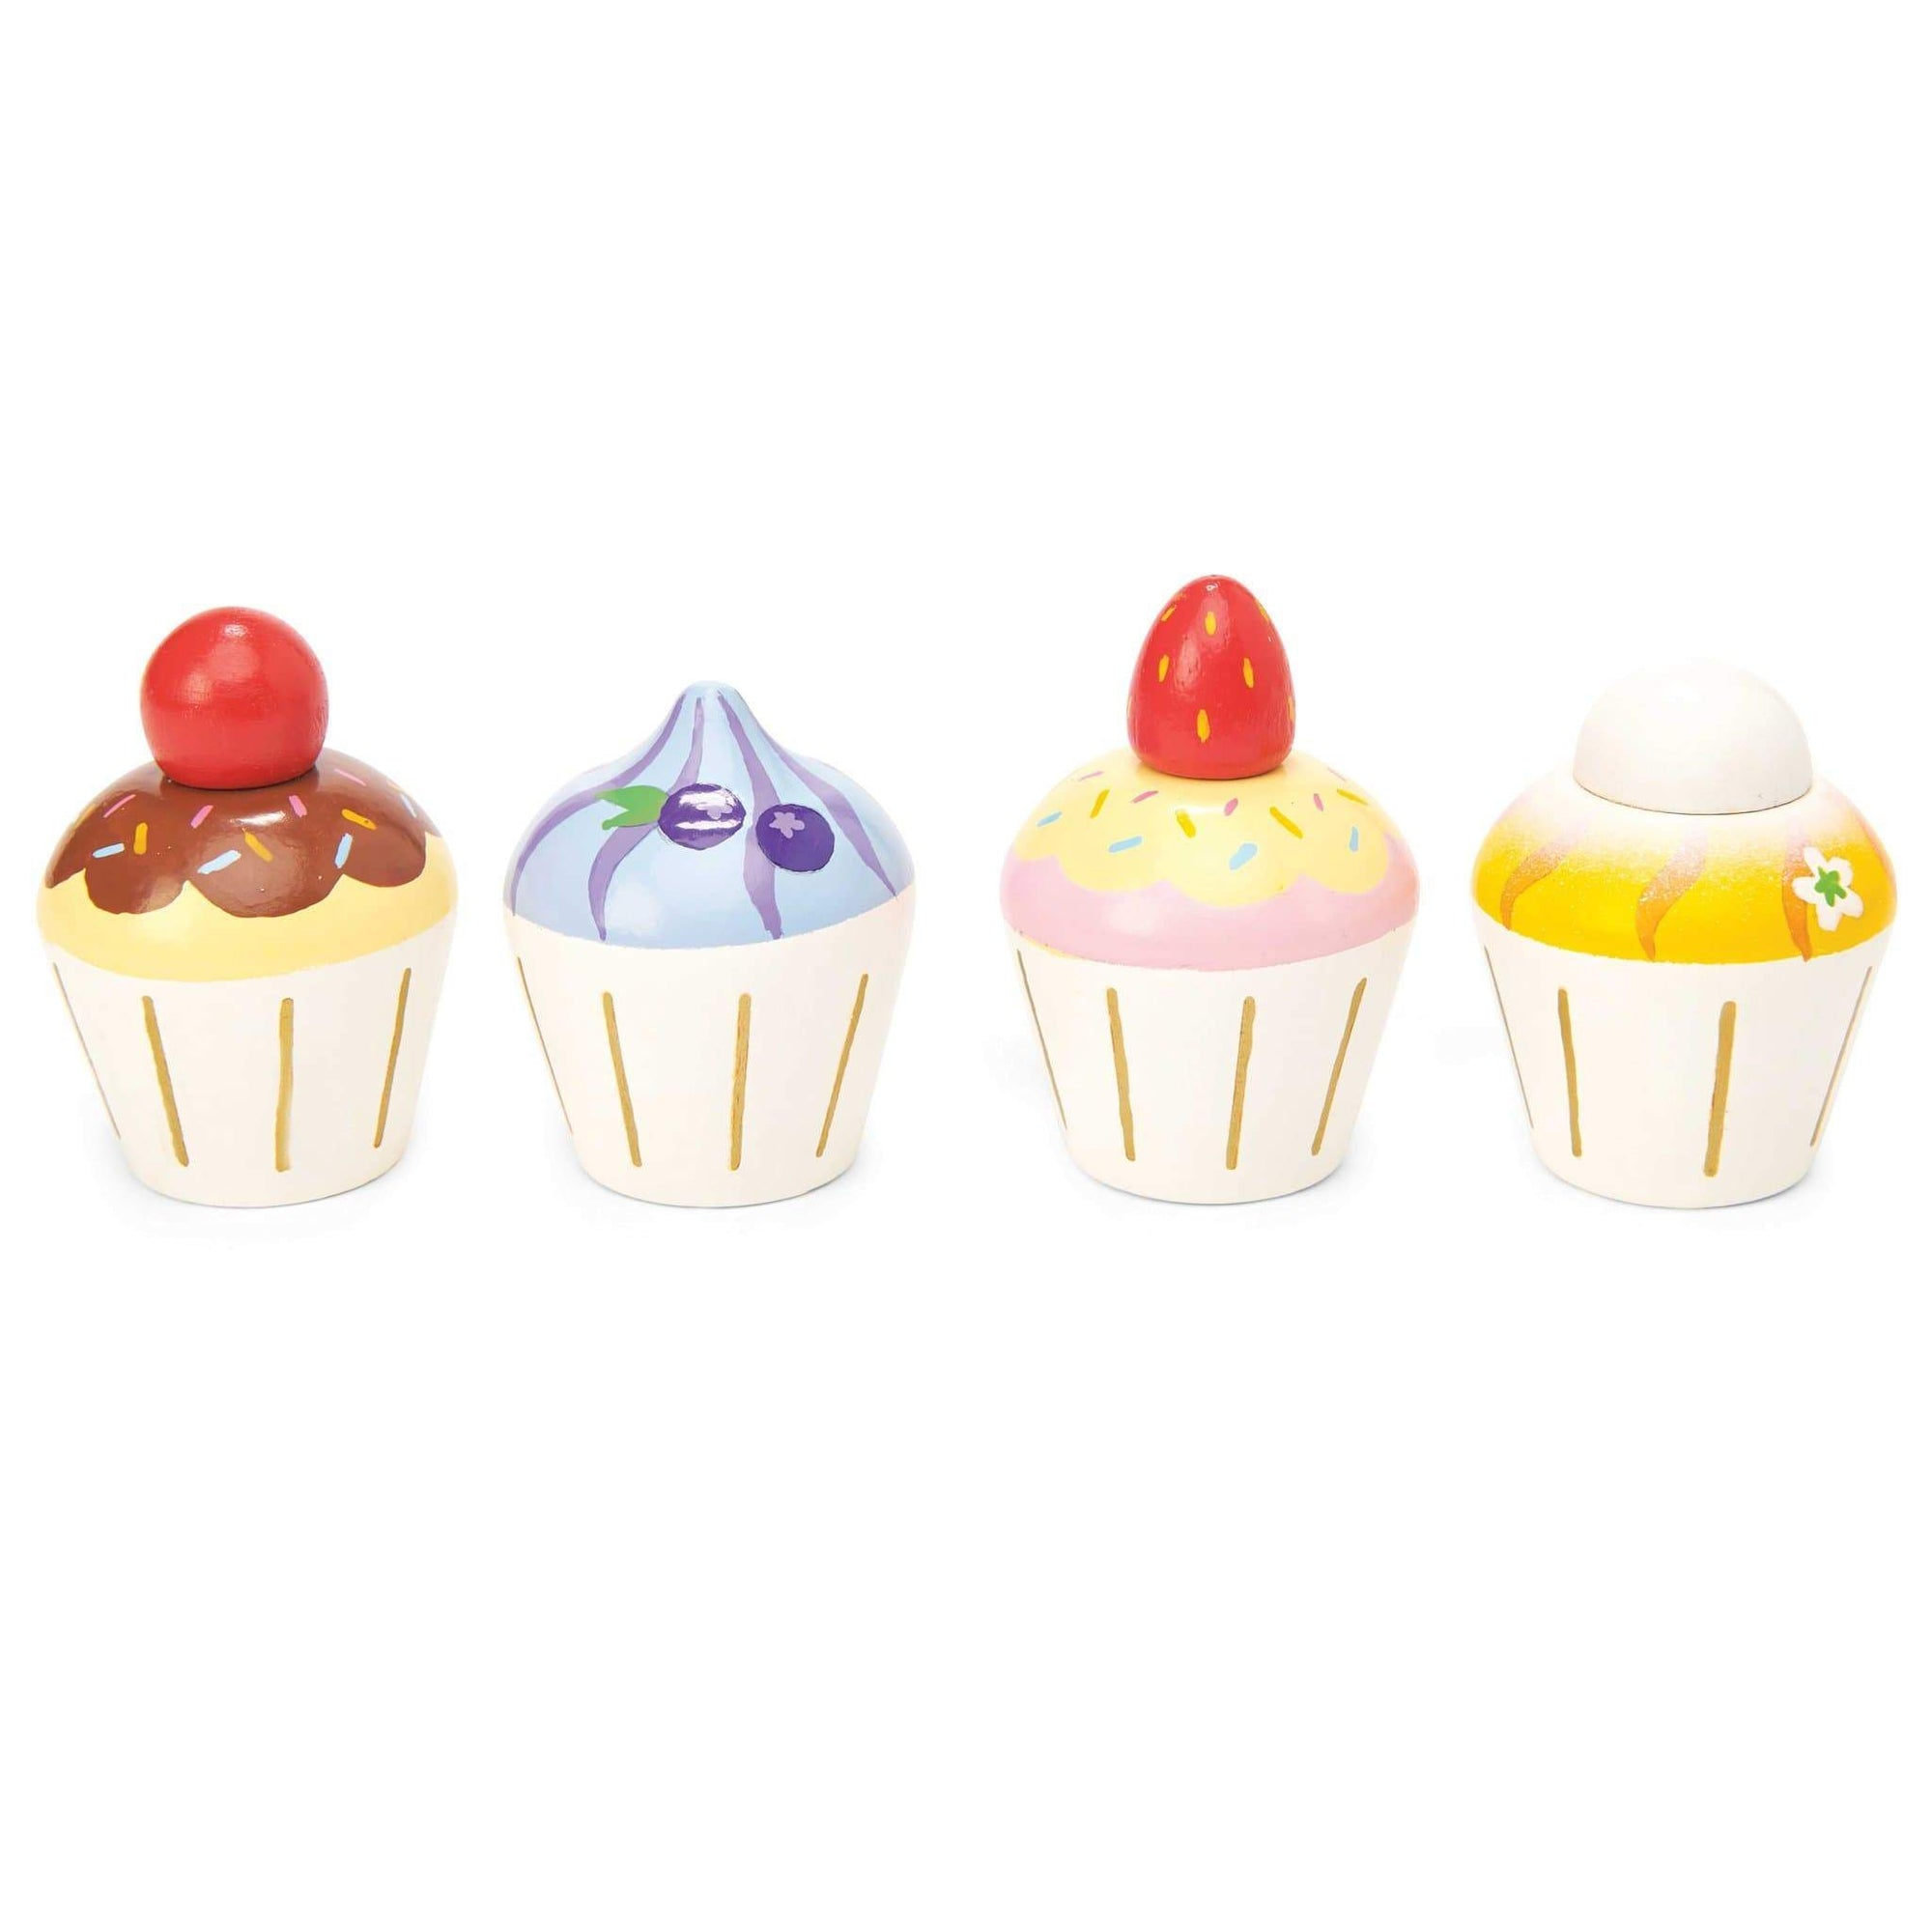 Le Toy Van Wooden Toys Cupcake Set